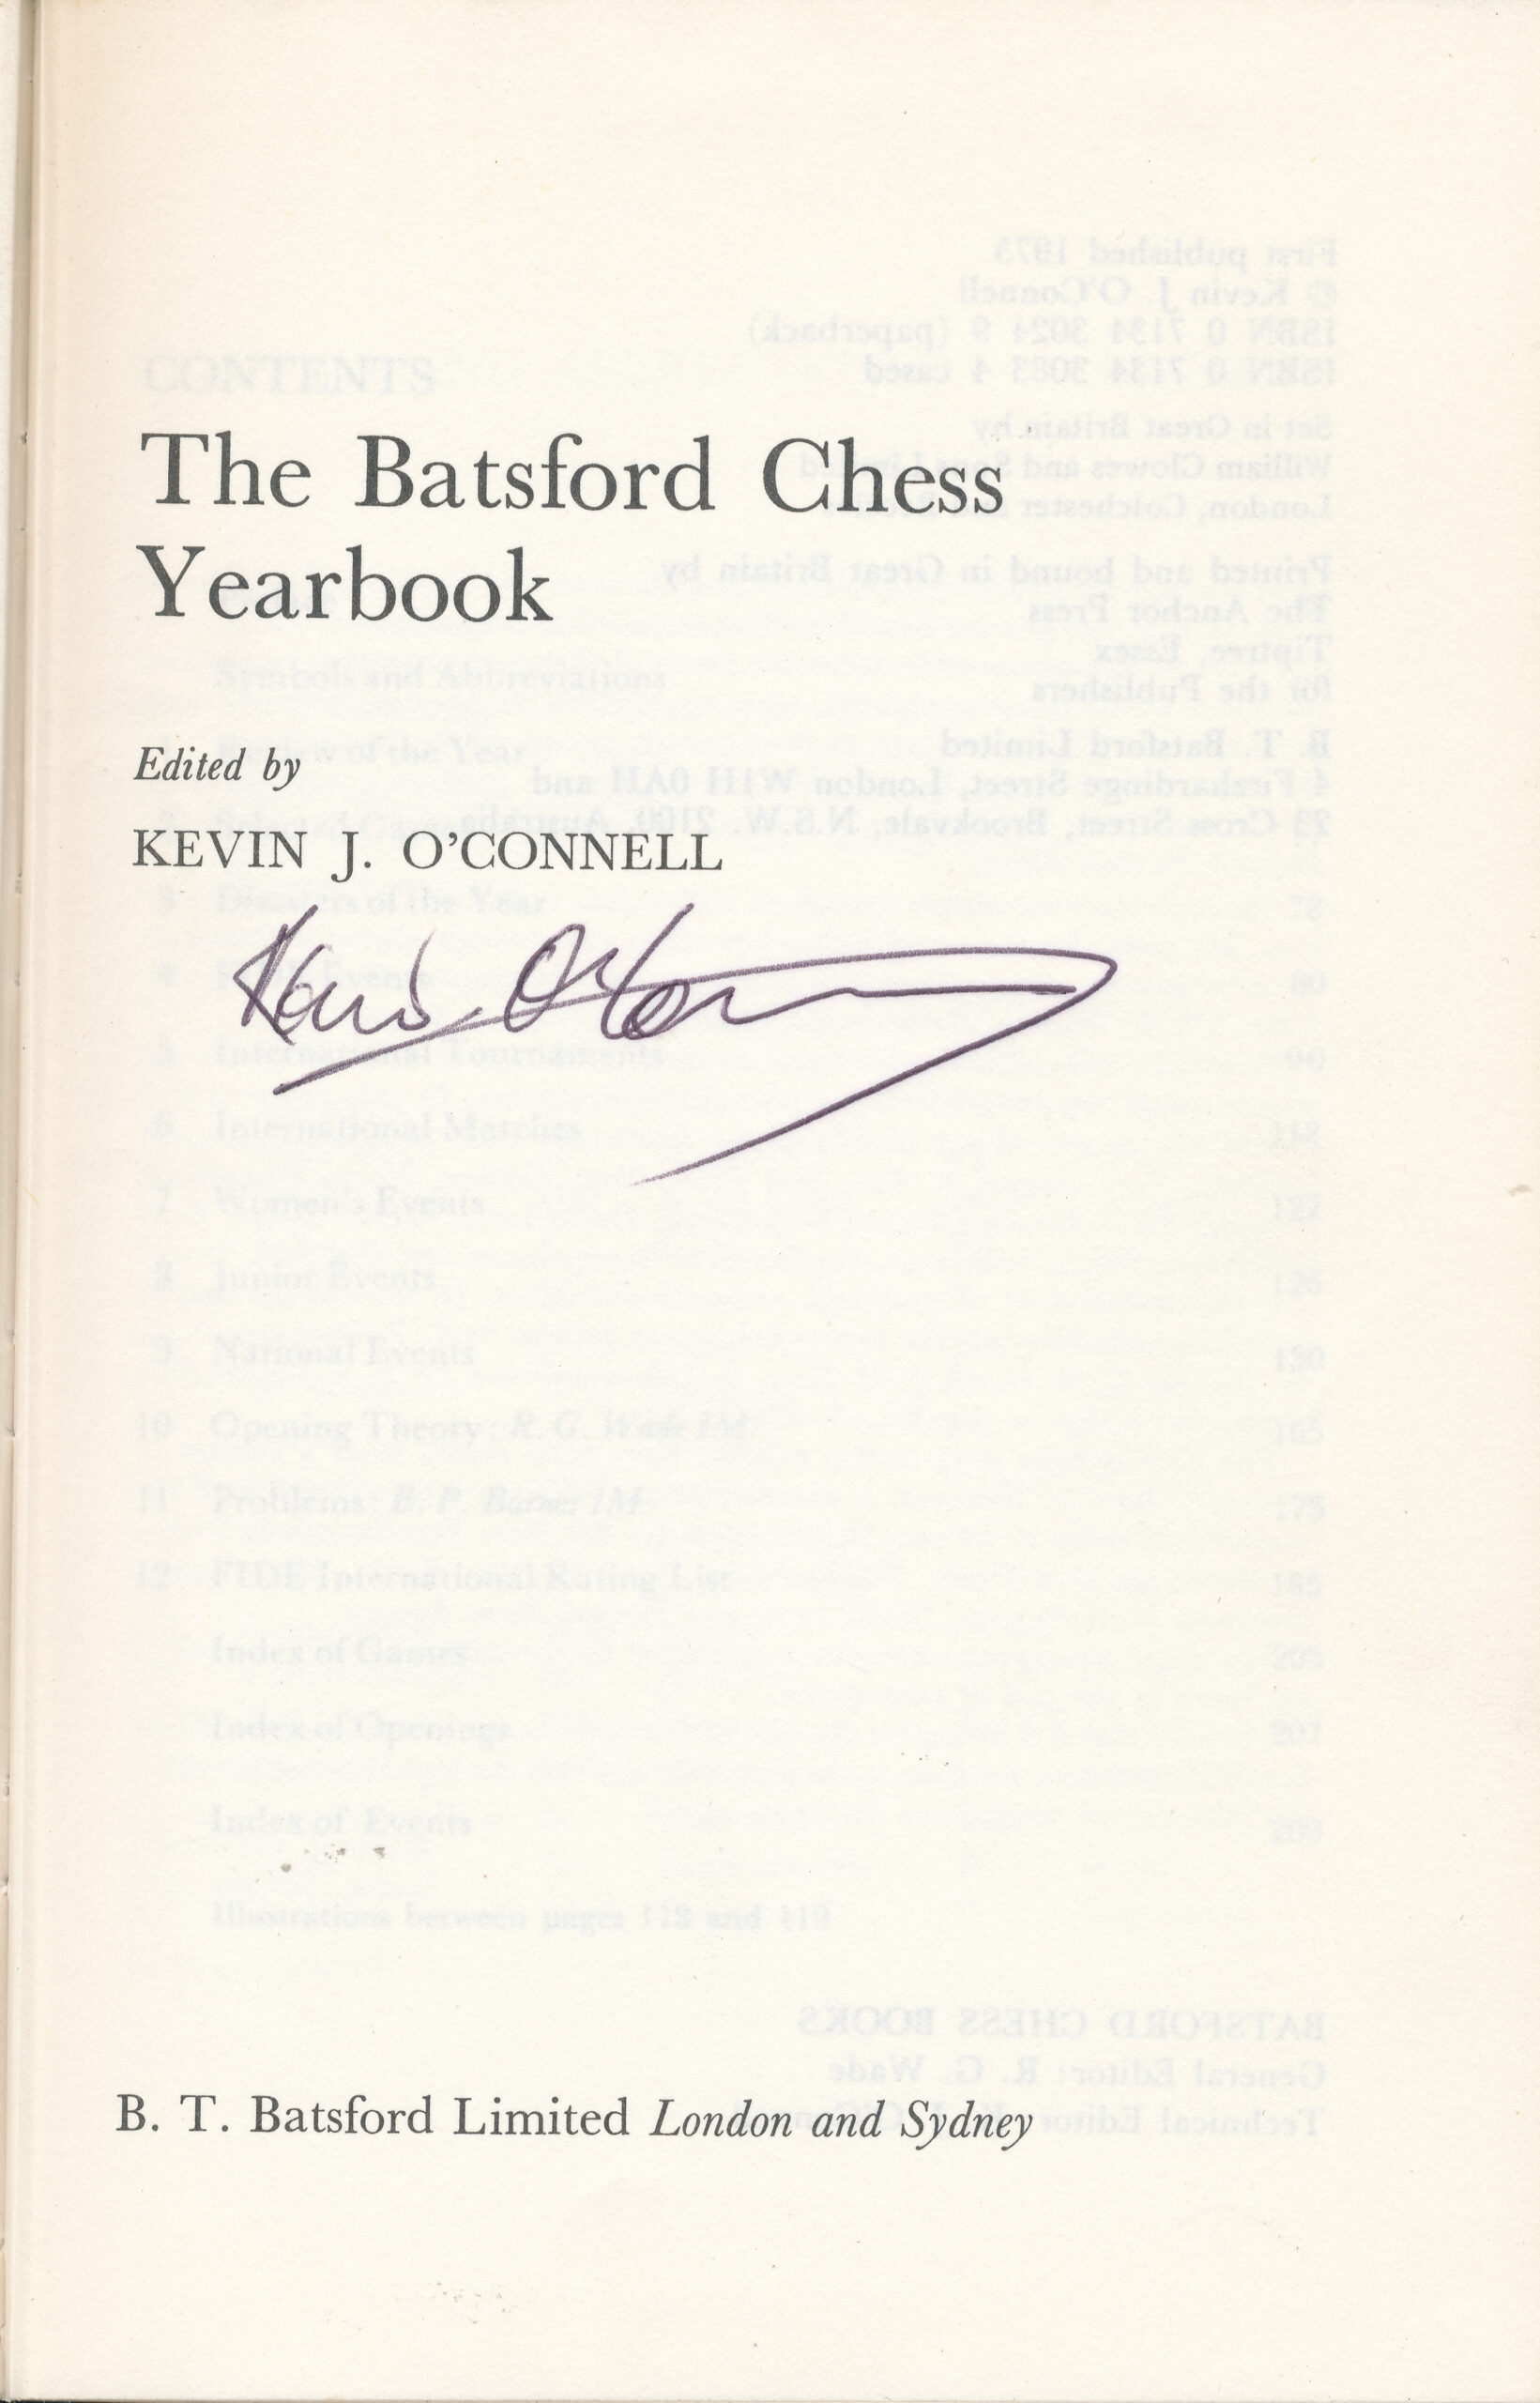 The Batsford Chess Yearbook